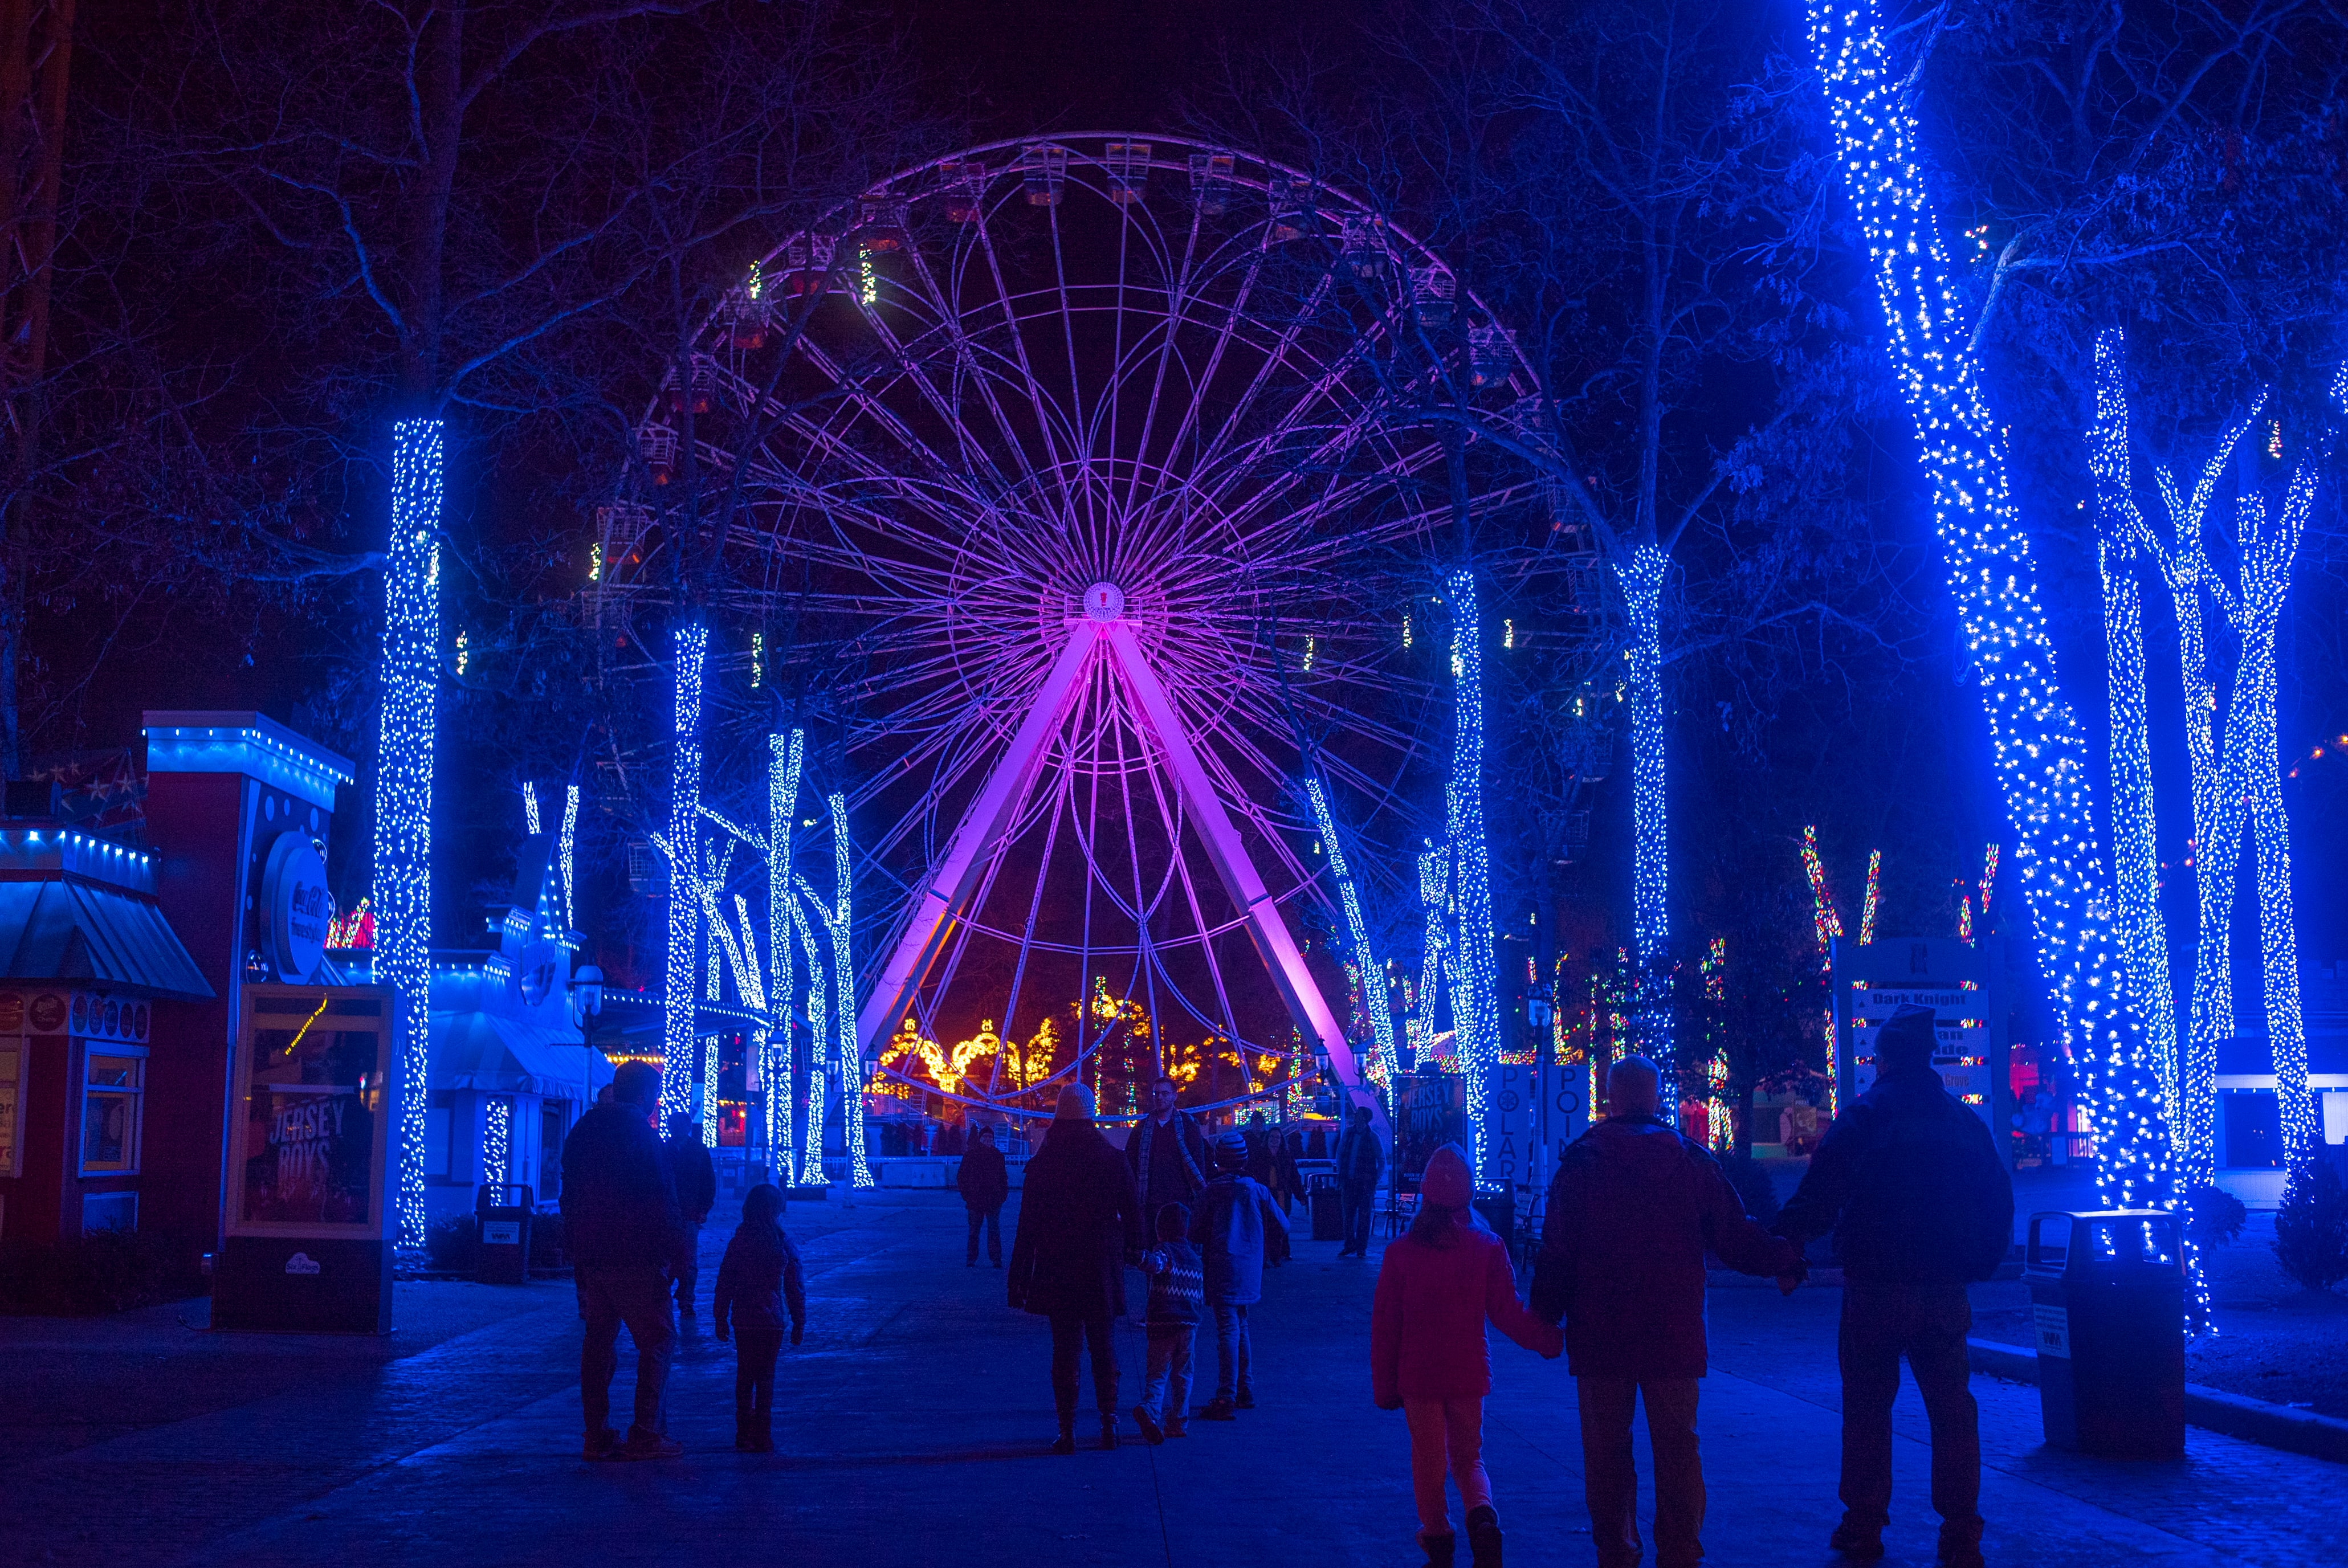 Six Flags Christmas Lights Nj 2020 Six Flags Holiday in the Park Is Chock Full of Wintry Magic   NJ